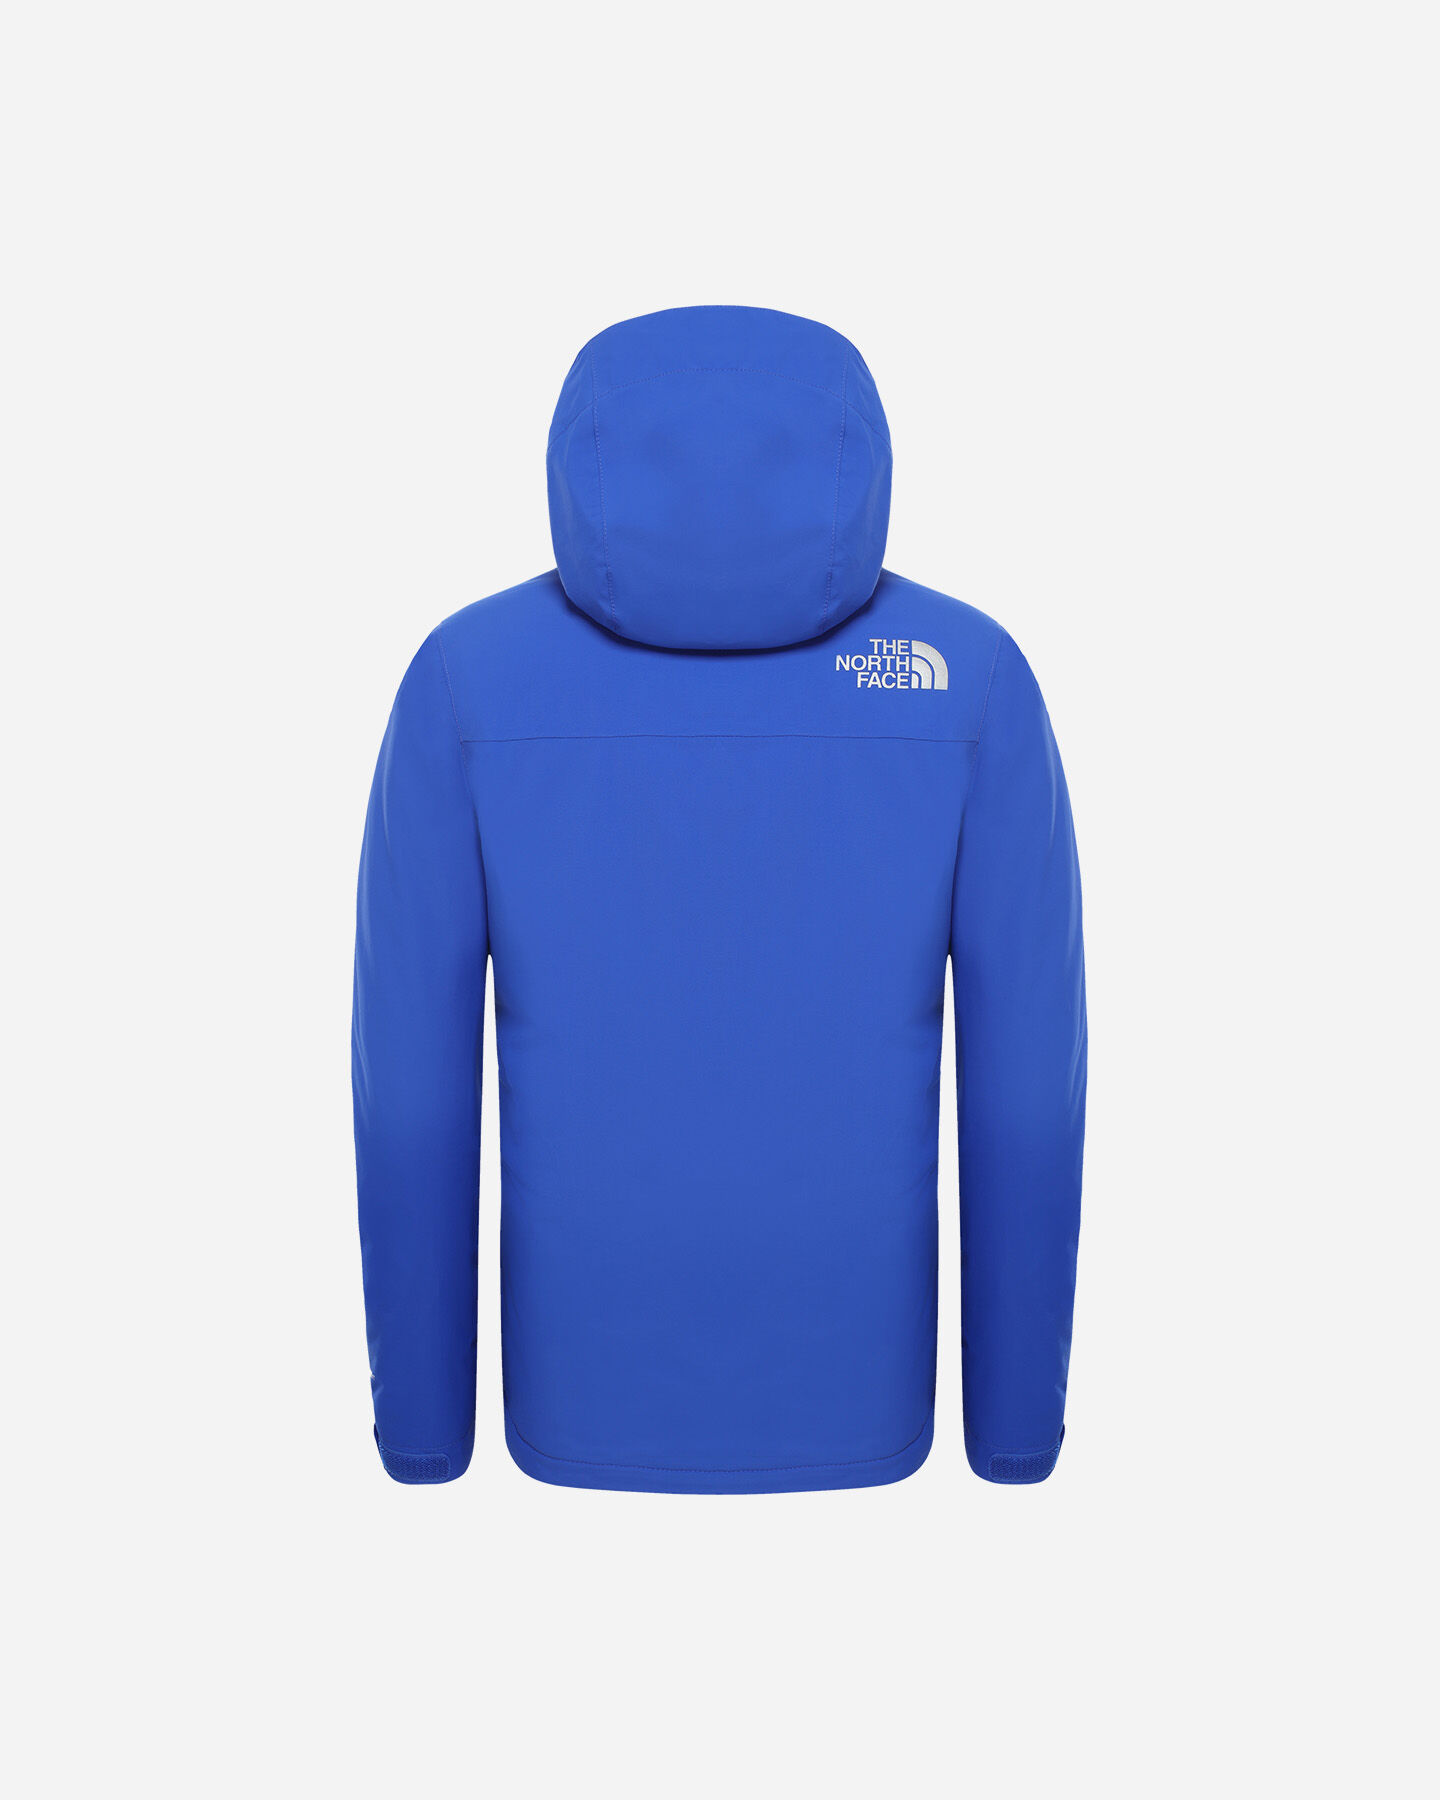 Giubbotto THE NORTH FACE SNOW QUEST JR S5086591 scatto 1